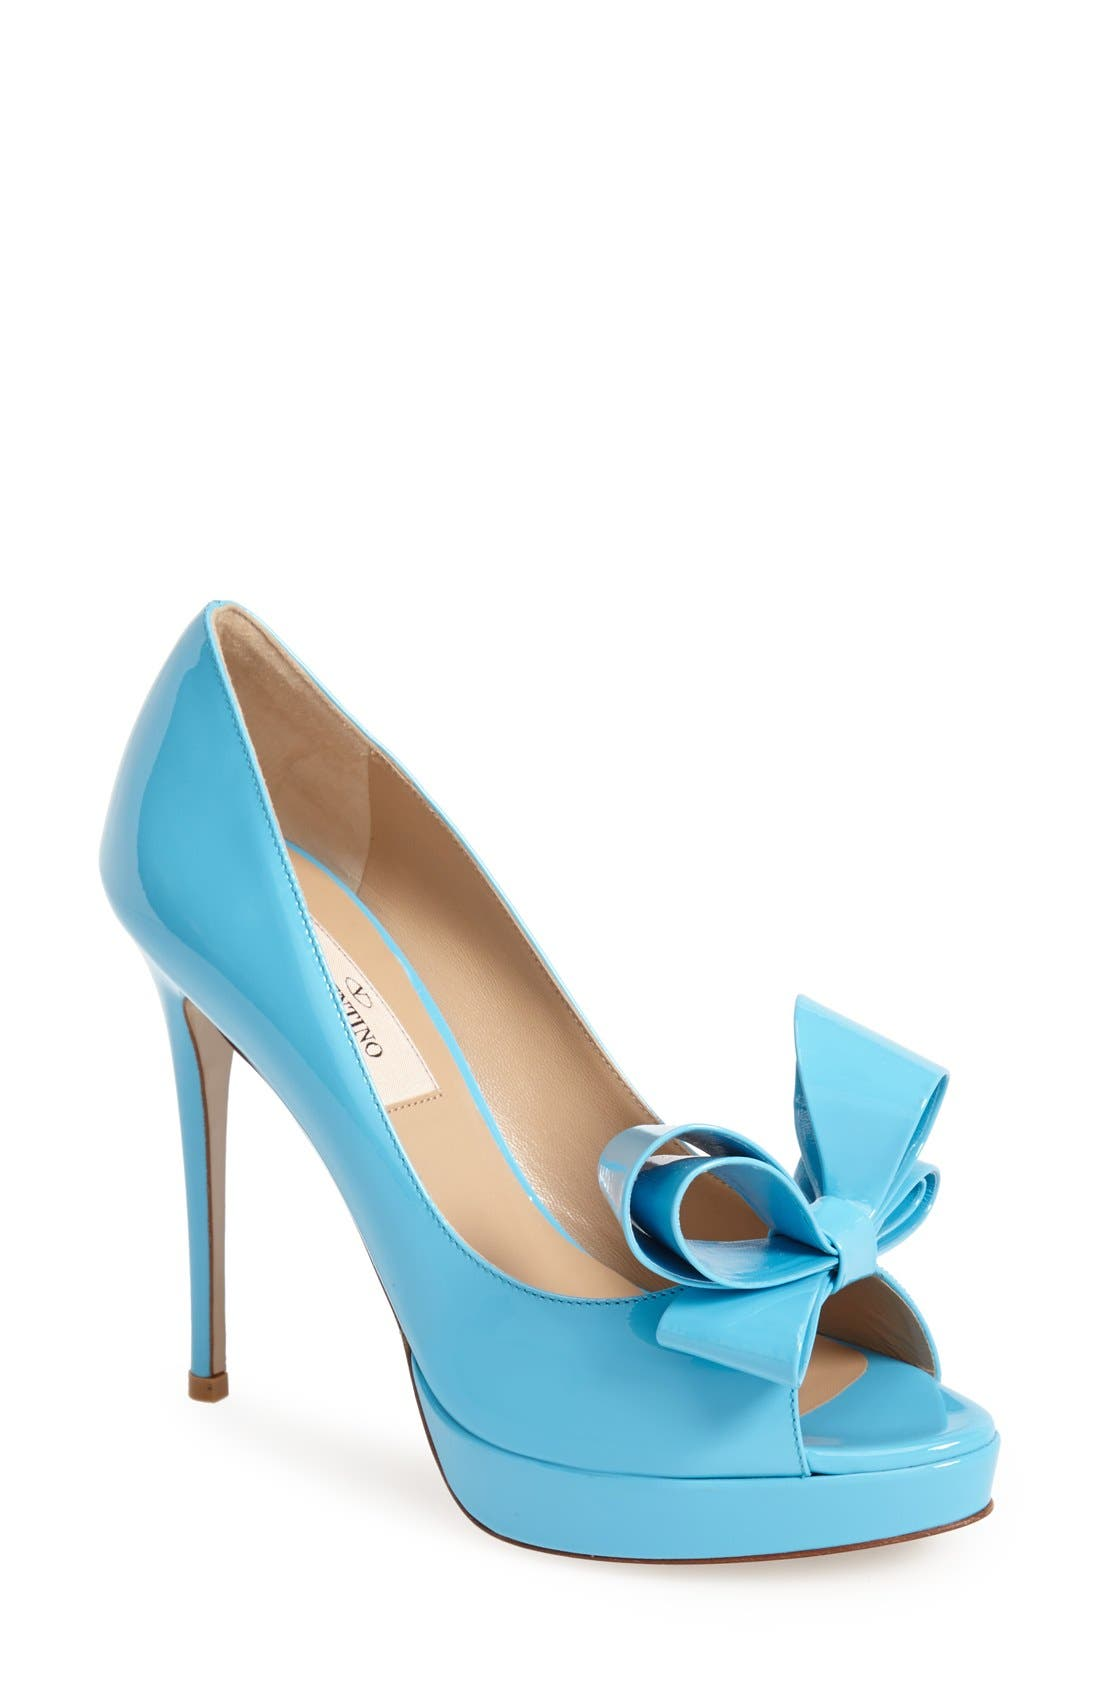 Alternate Image 1 Selected - Valentino 'Couture' Patent Leather Platform Pump (Women)